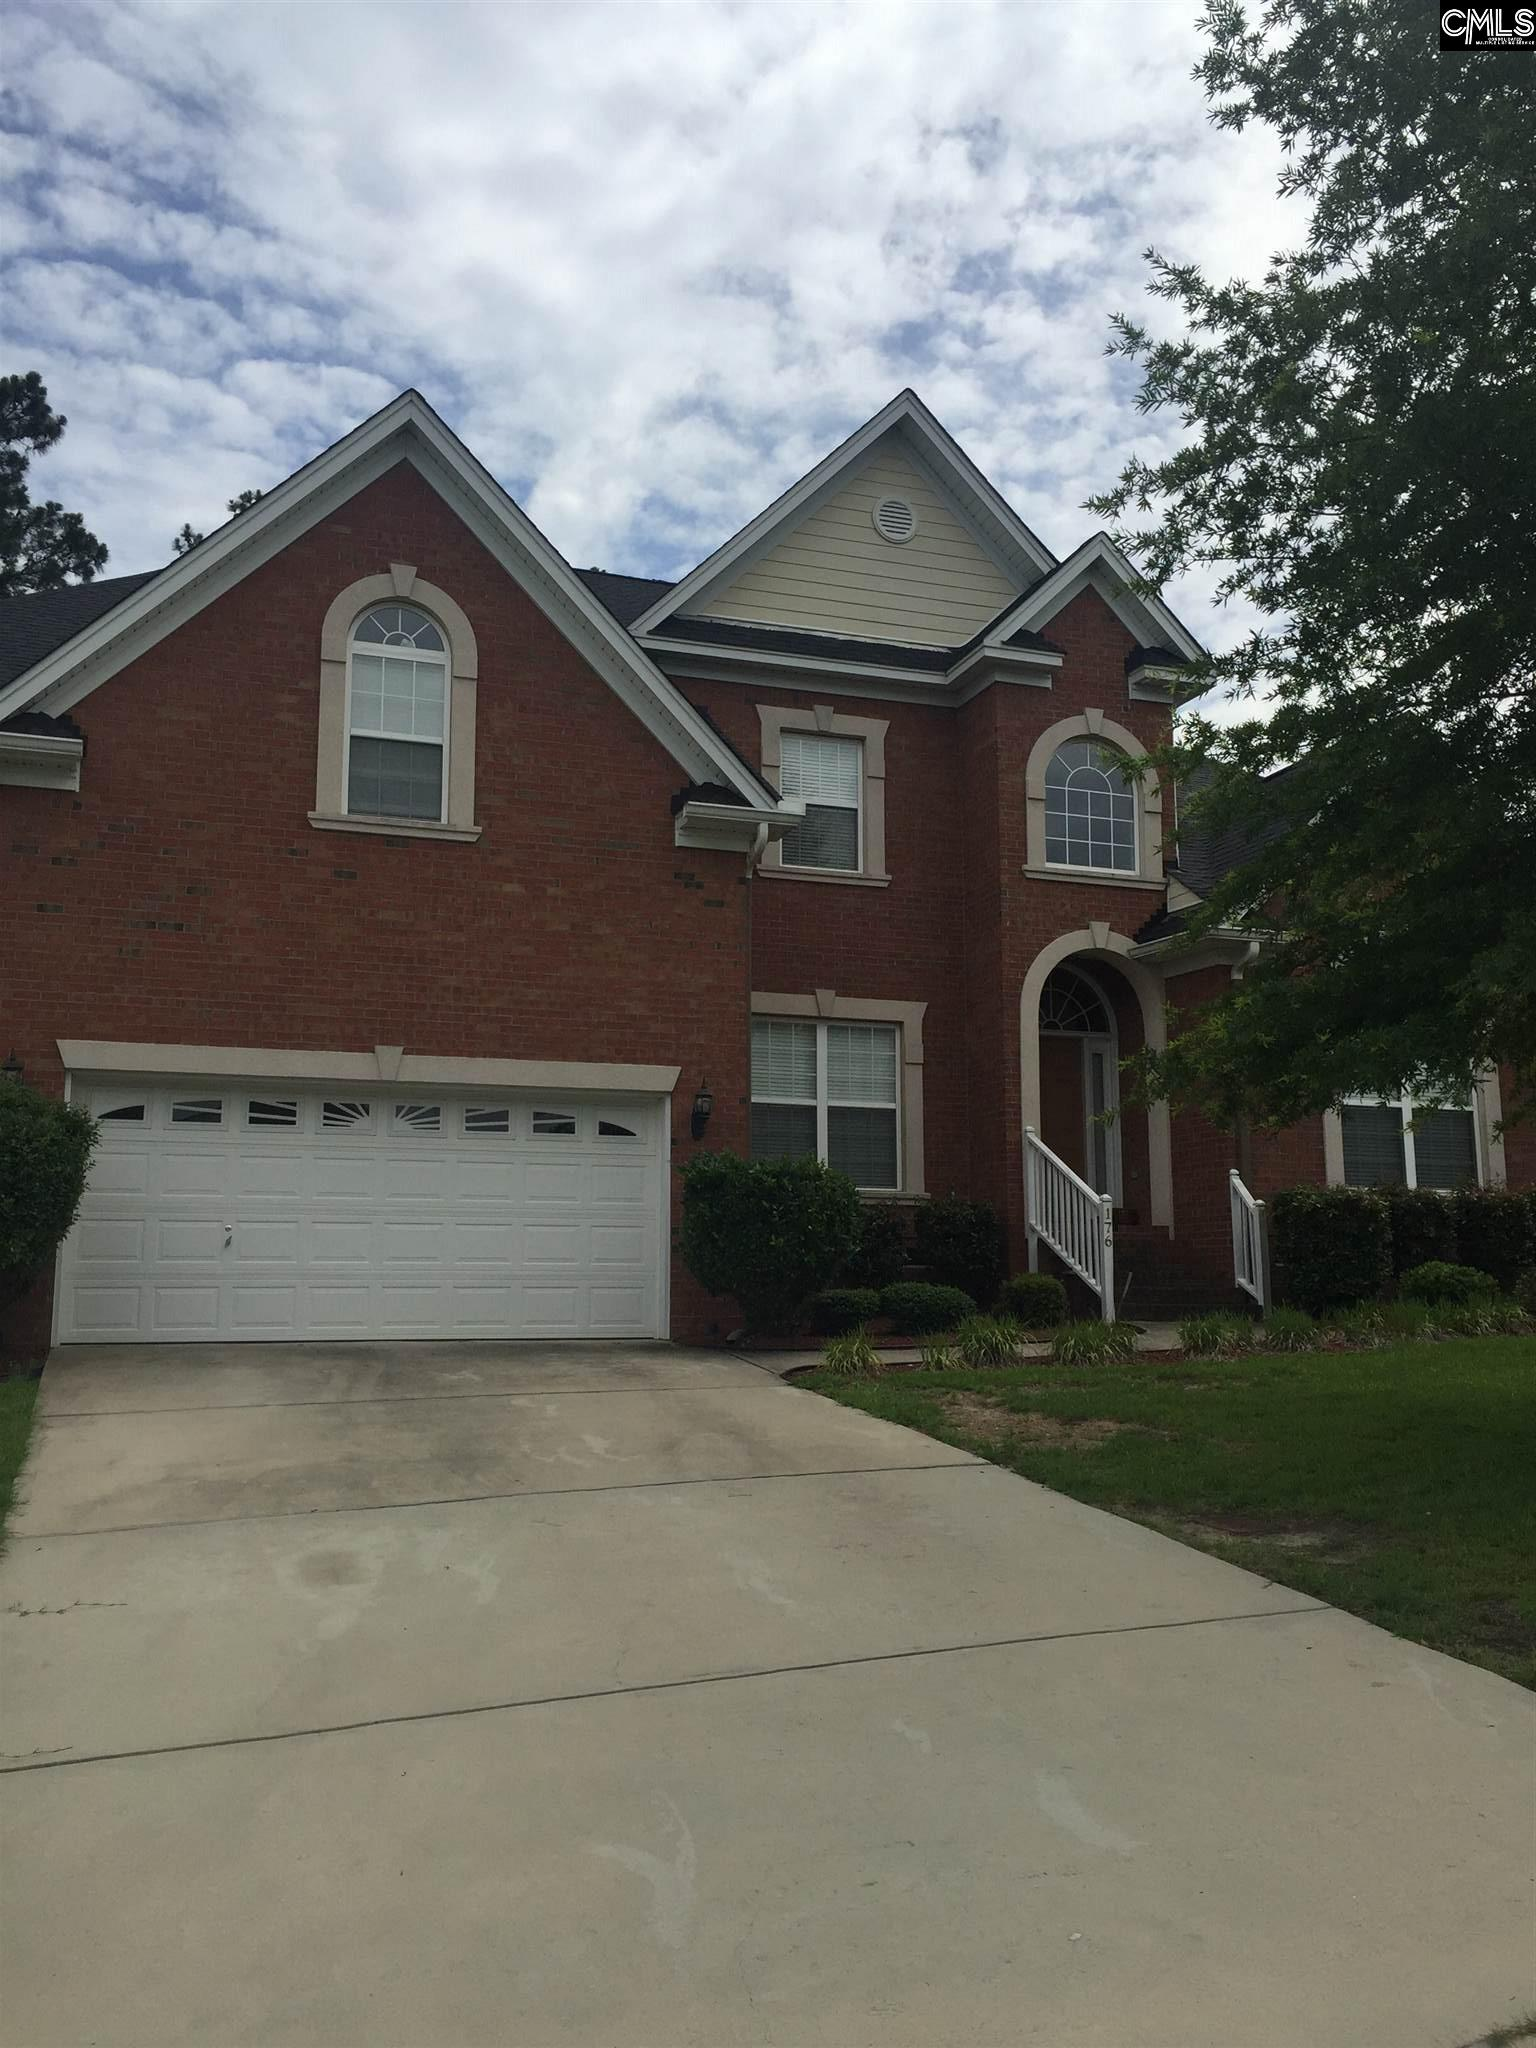 176 Carolina Ridge Columbia, SC 29229